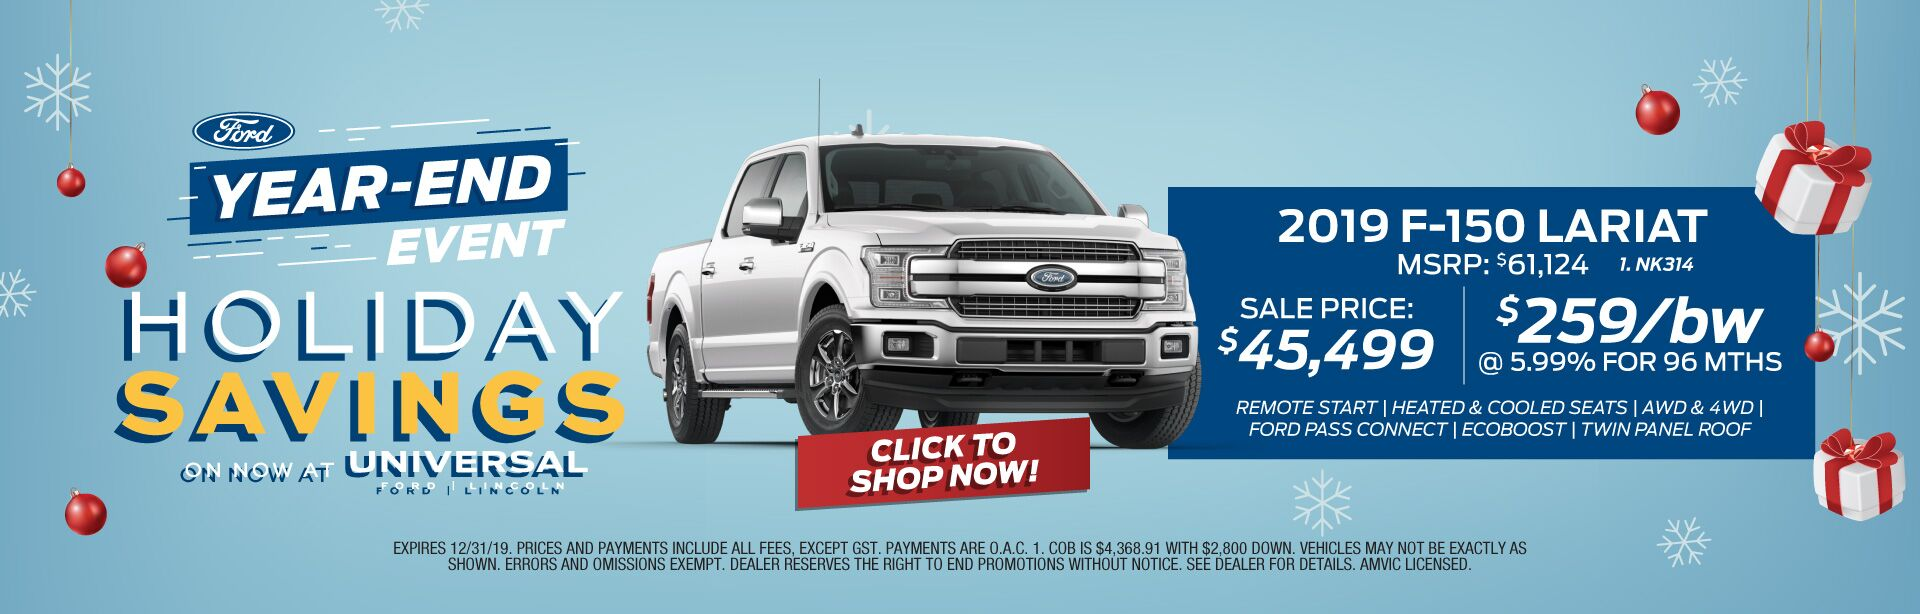 Year-End Event Holiday Savings F-150 Lariat